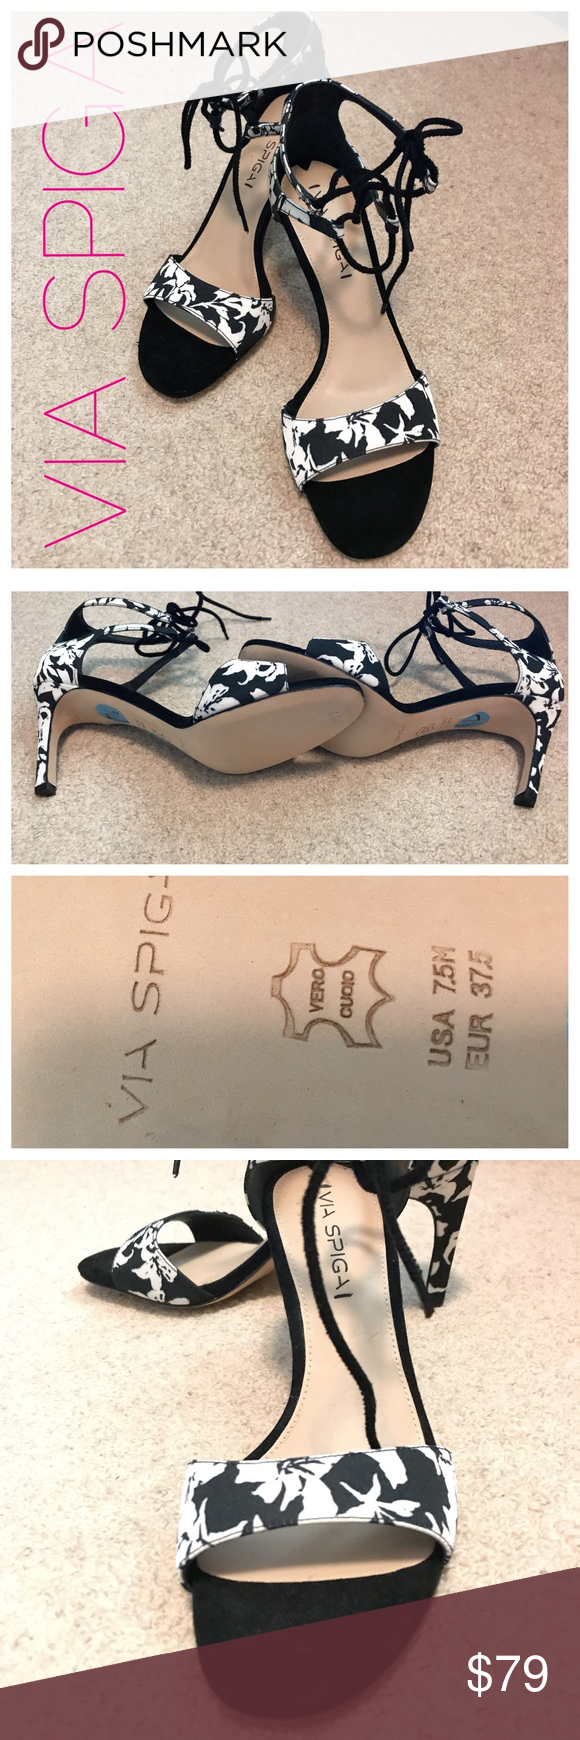 """VIA SPIGA Ankle-tie Heels Pretty black and white floral canvas strap Oy sandals with suede accents and tie straps. Leather bottoms. NWOT. 2"""" heels. Pristine. Via Spiga Shoes Sandals"""